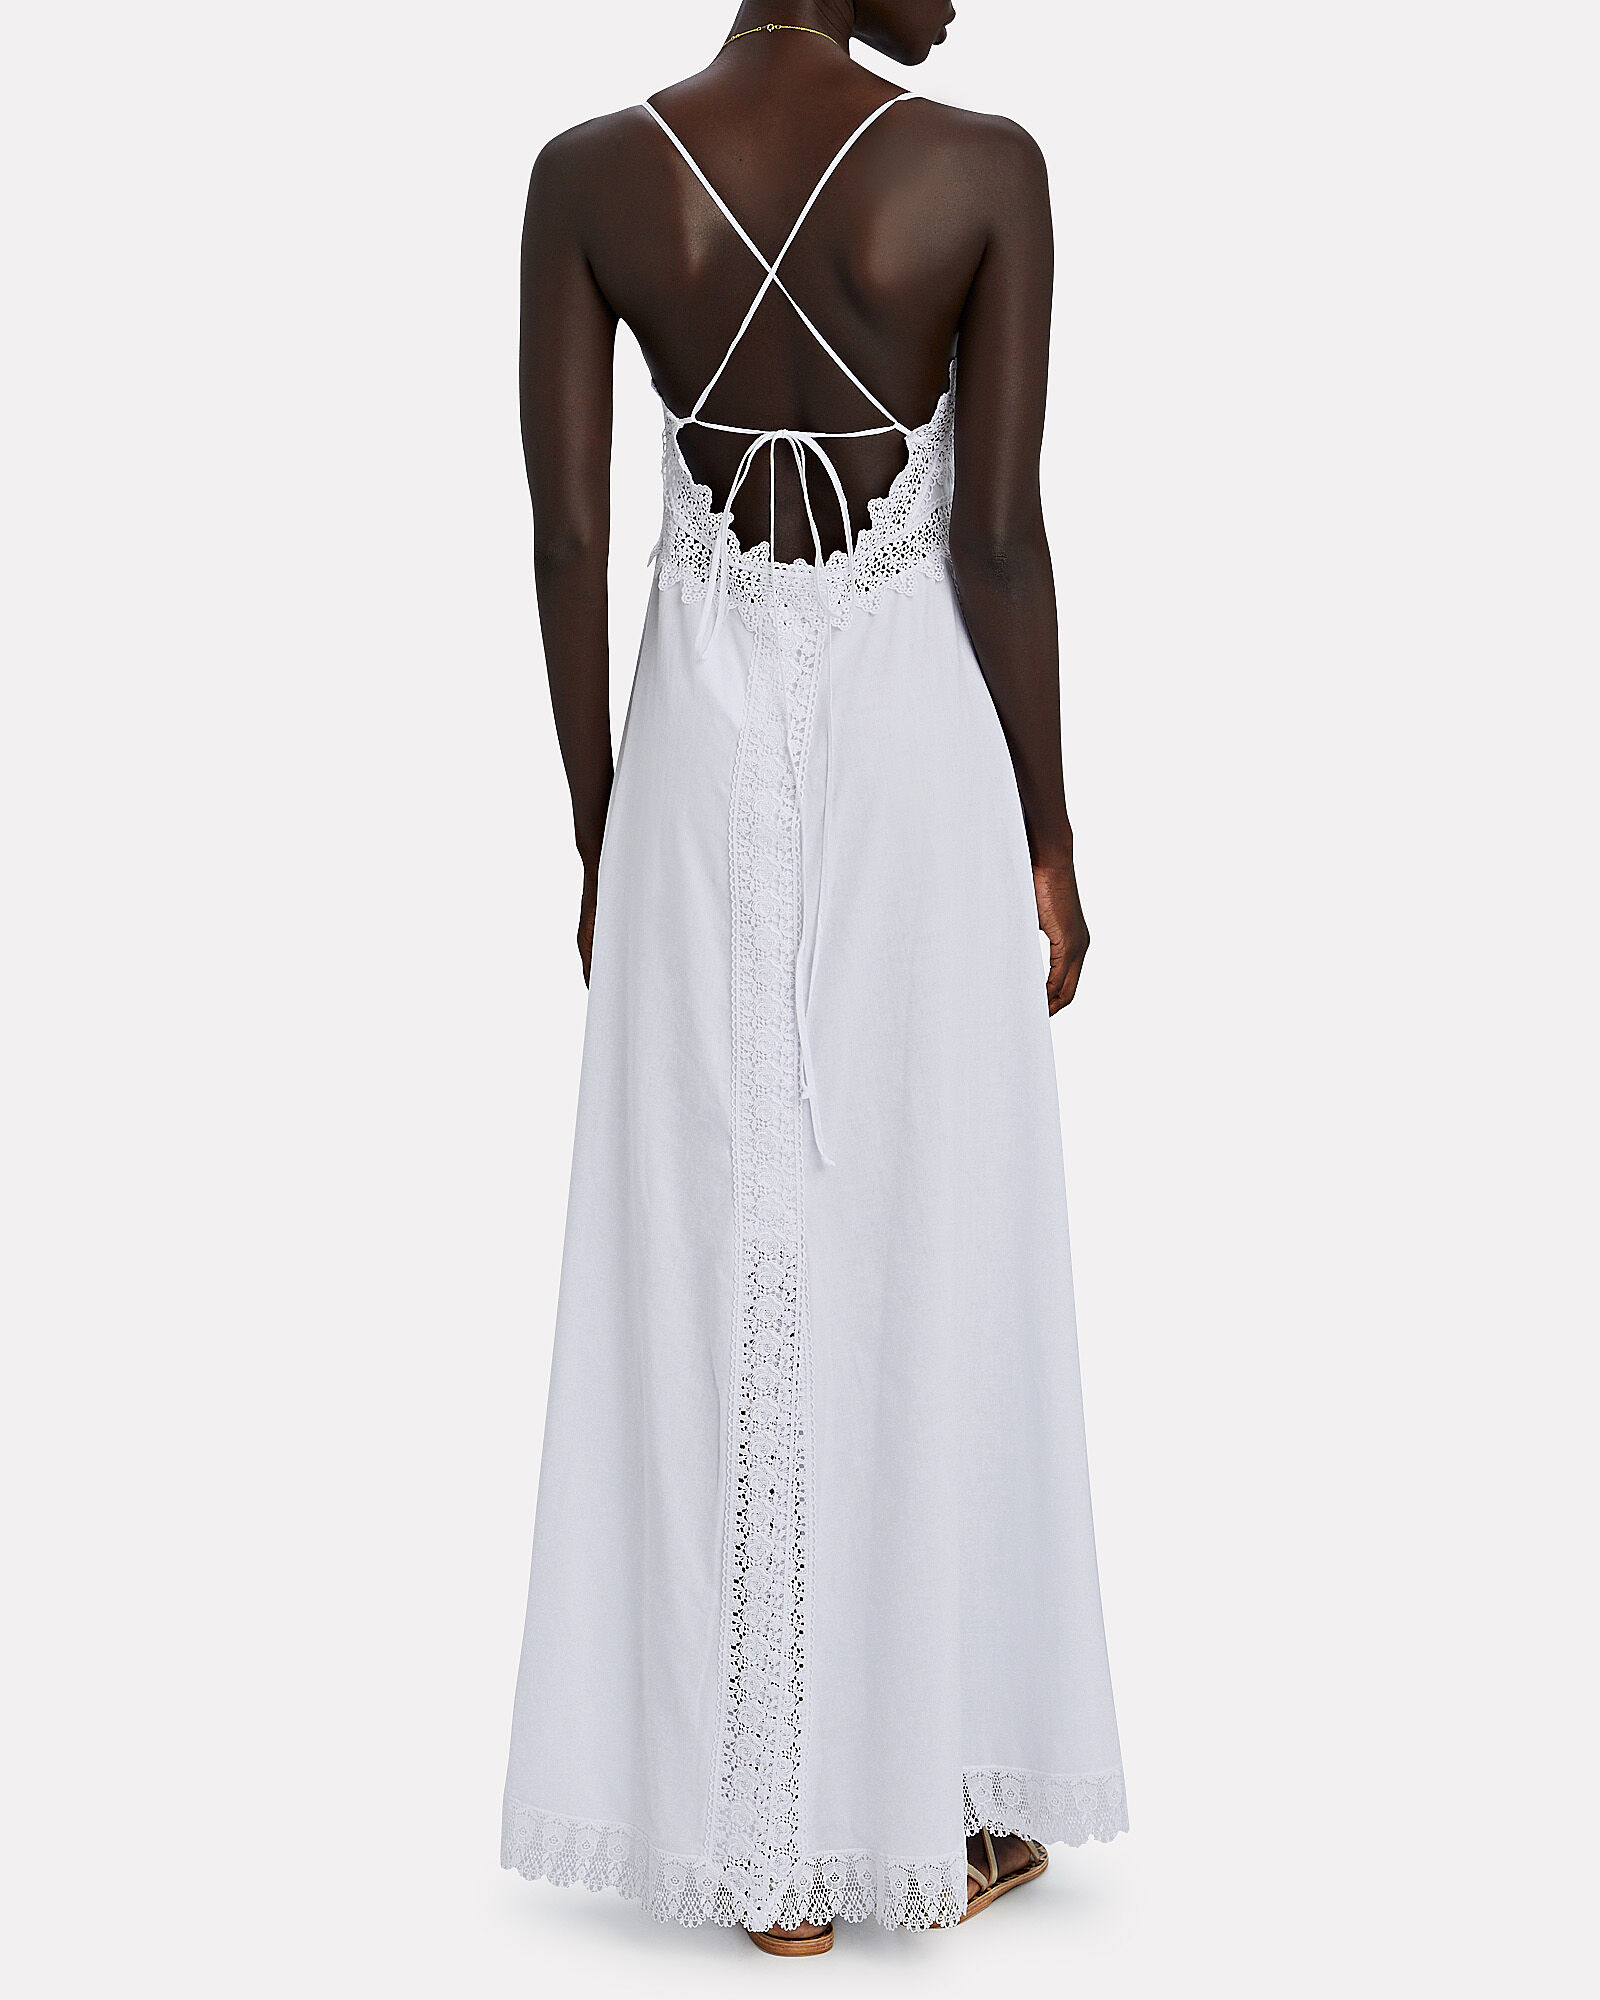 Imagen Lace-Trimmed Voile Dress, WHITE, hi-res